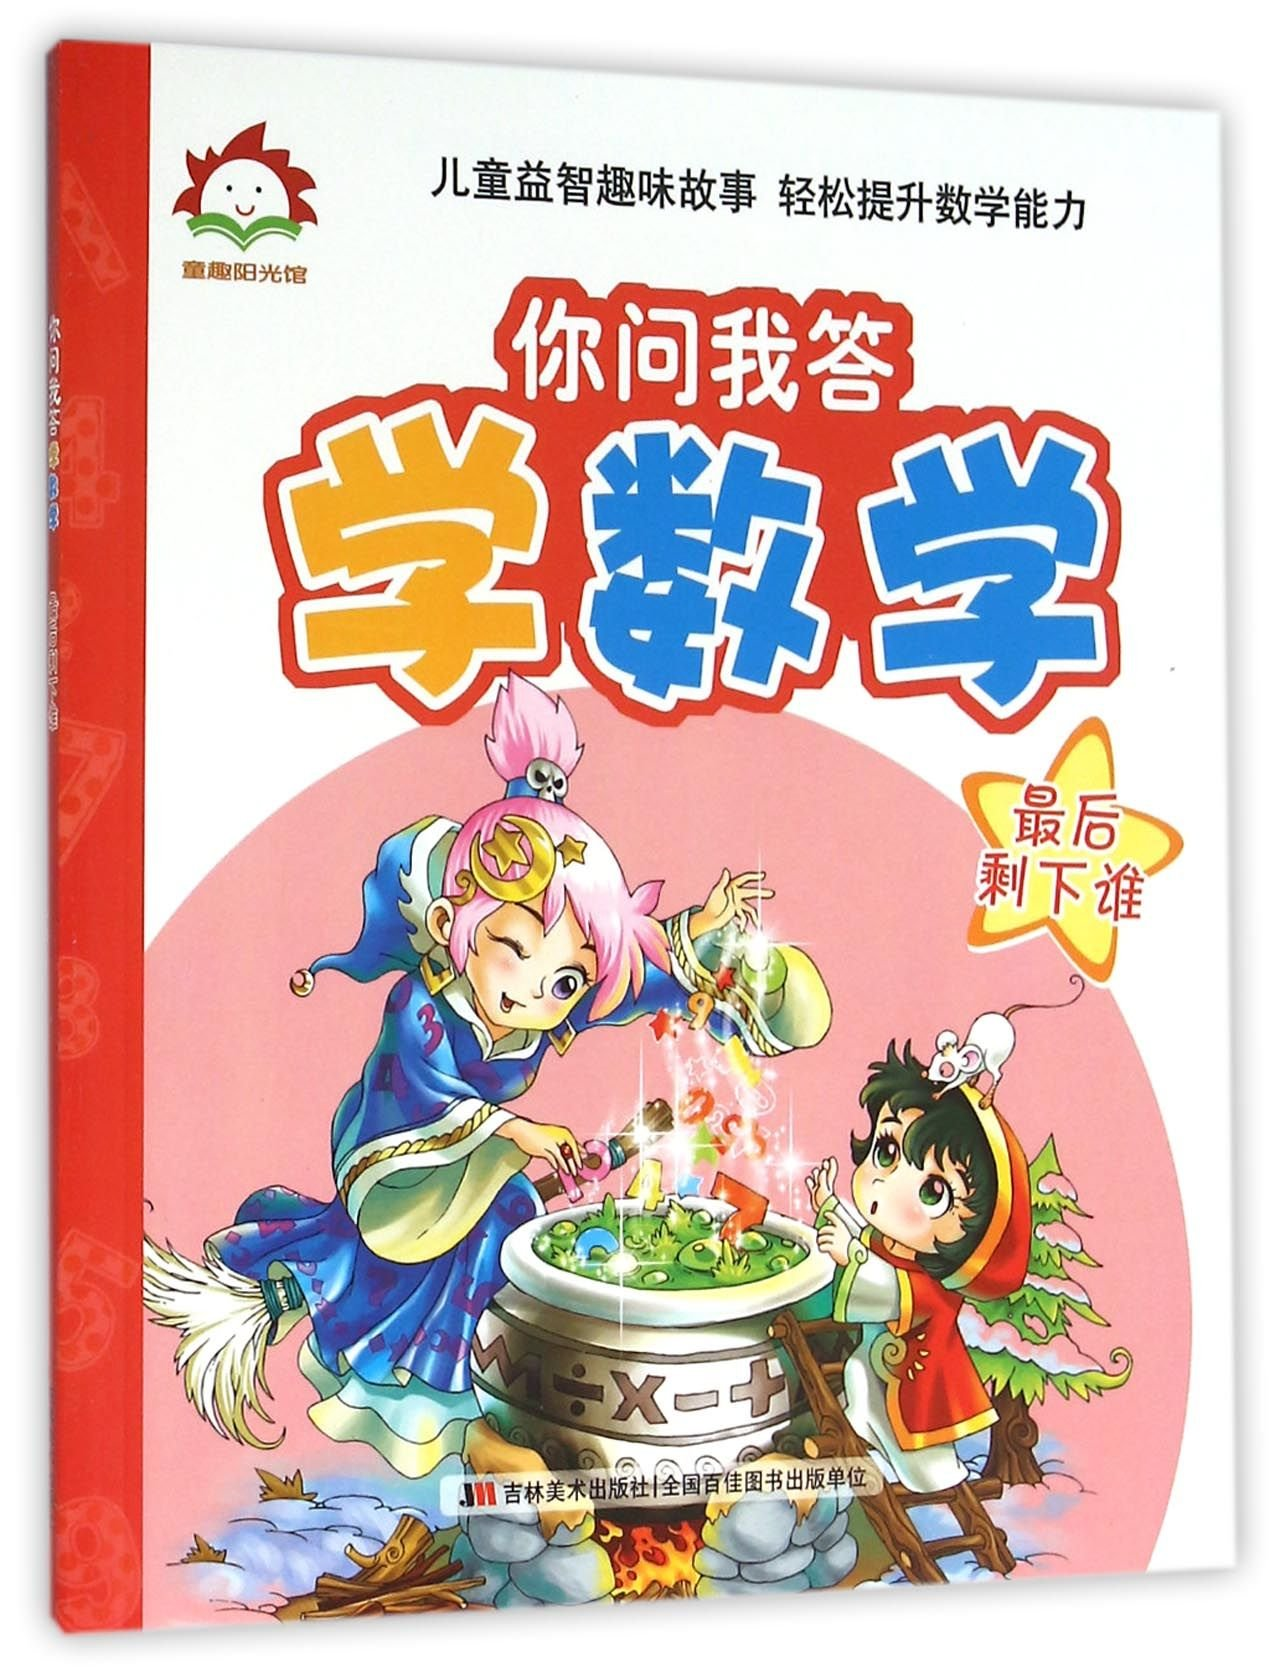 Who Is Left Behind (Math Puzzles For Kids) (Chinese Edition) PDF